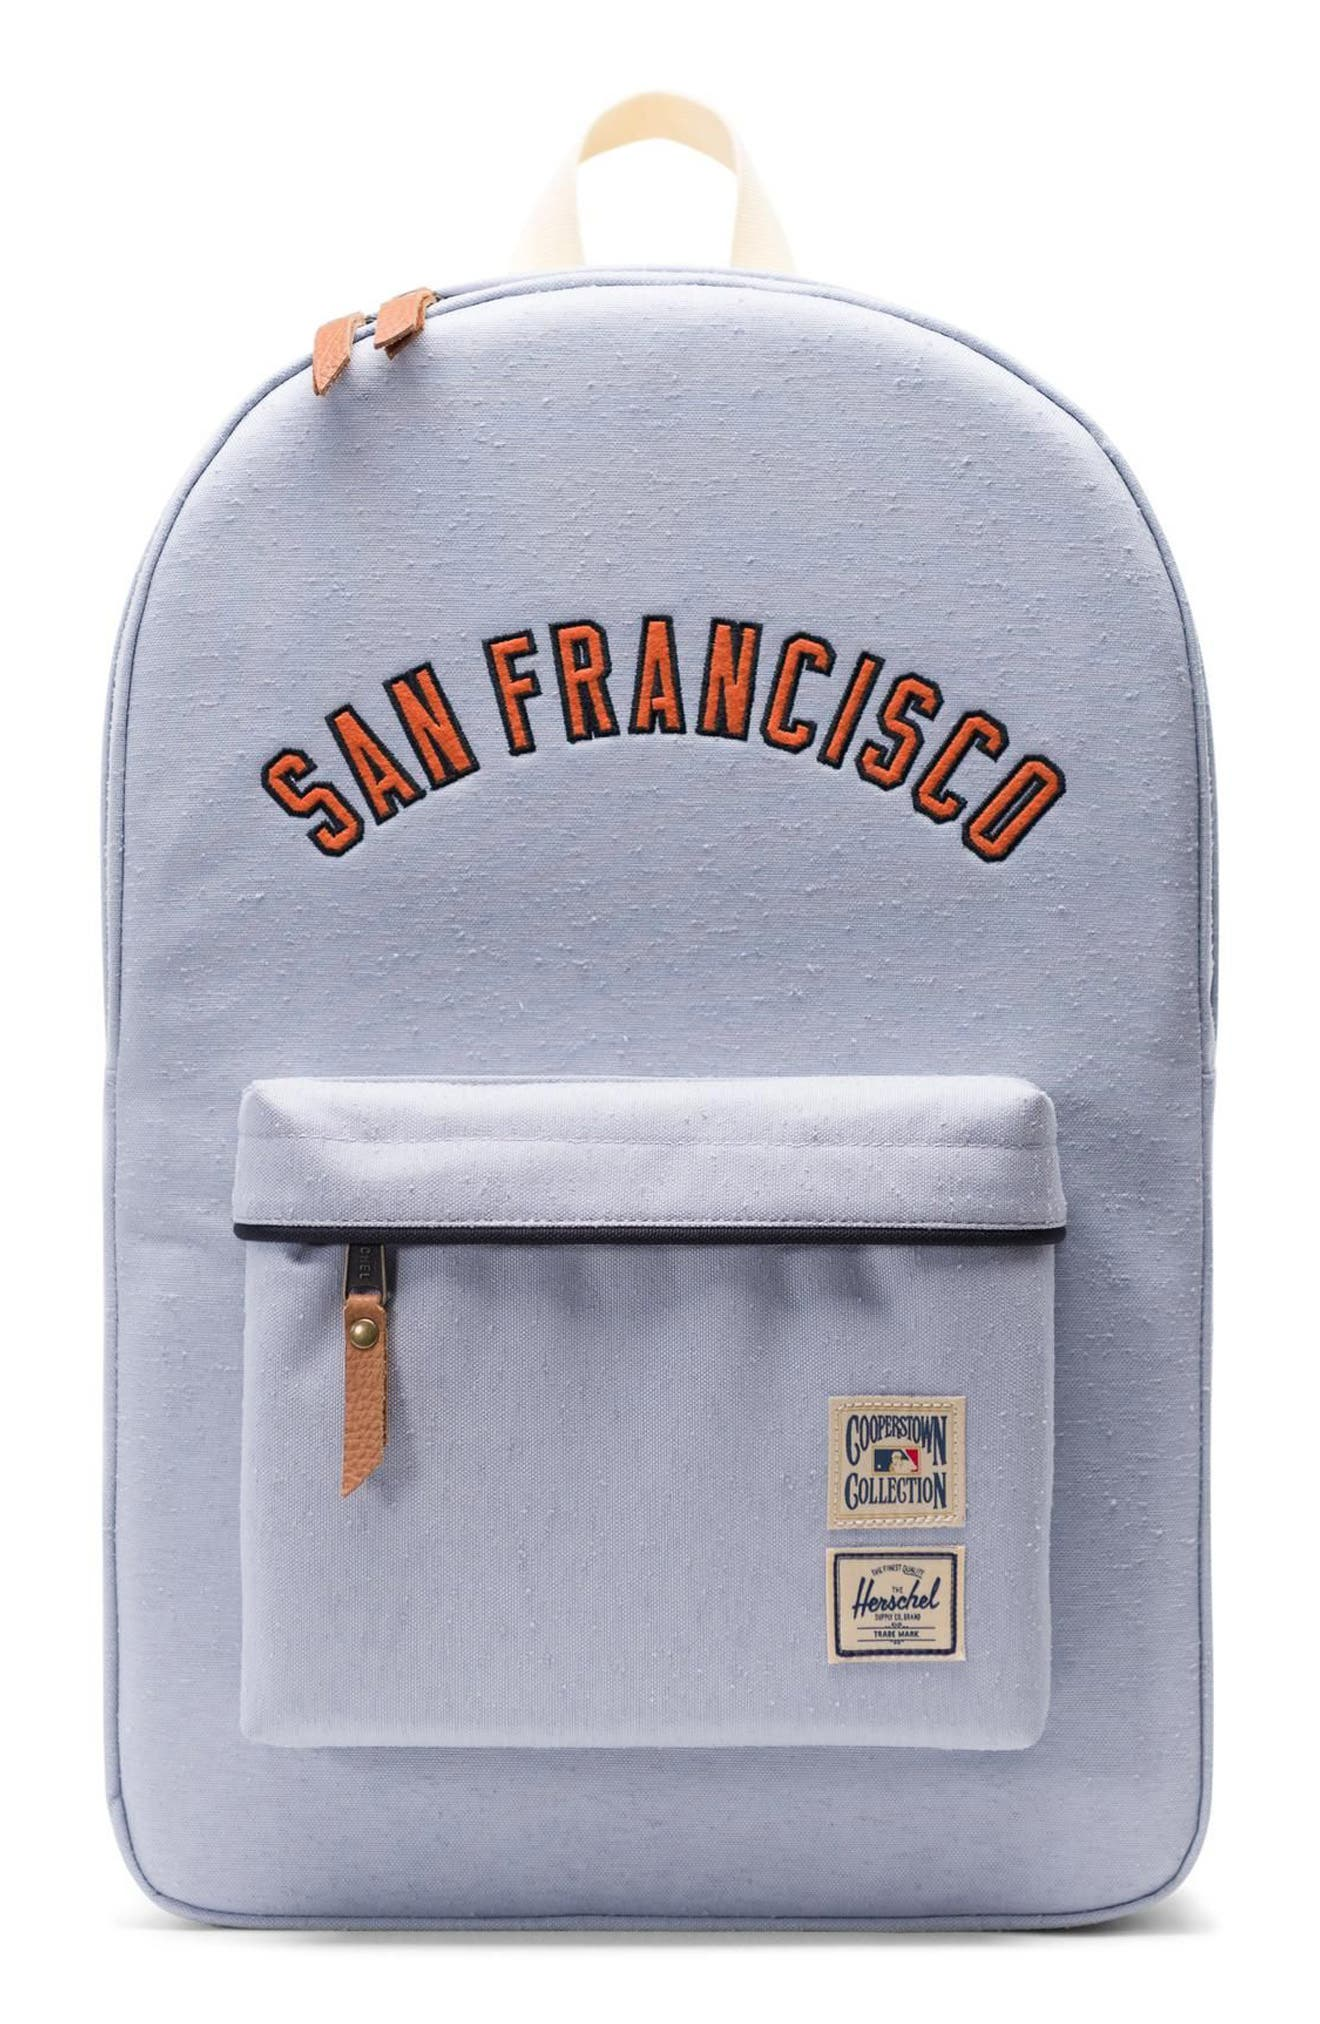 Heritage - MLB Cooperstown Collection Backpack,                         Main,                         color, San Francisco Giants